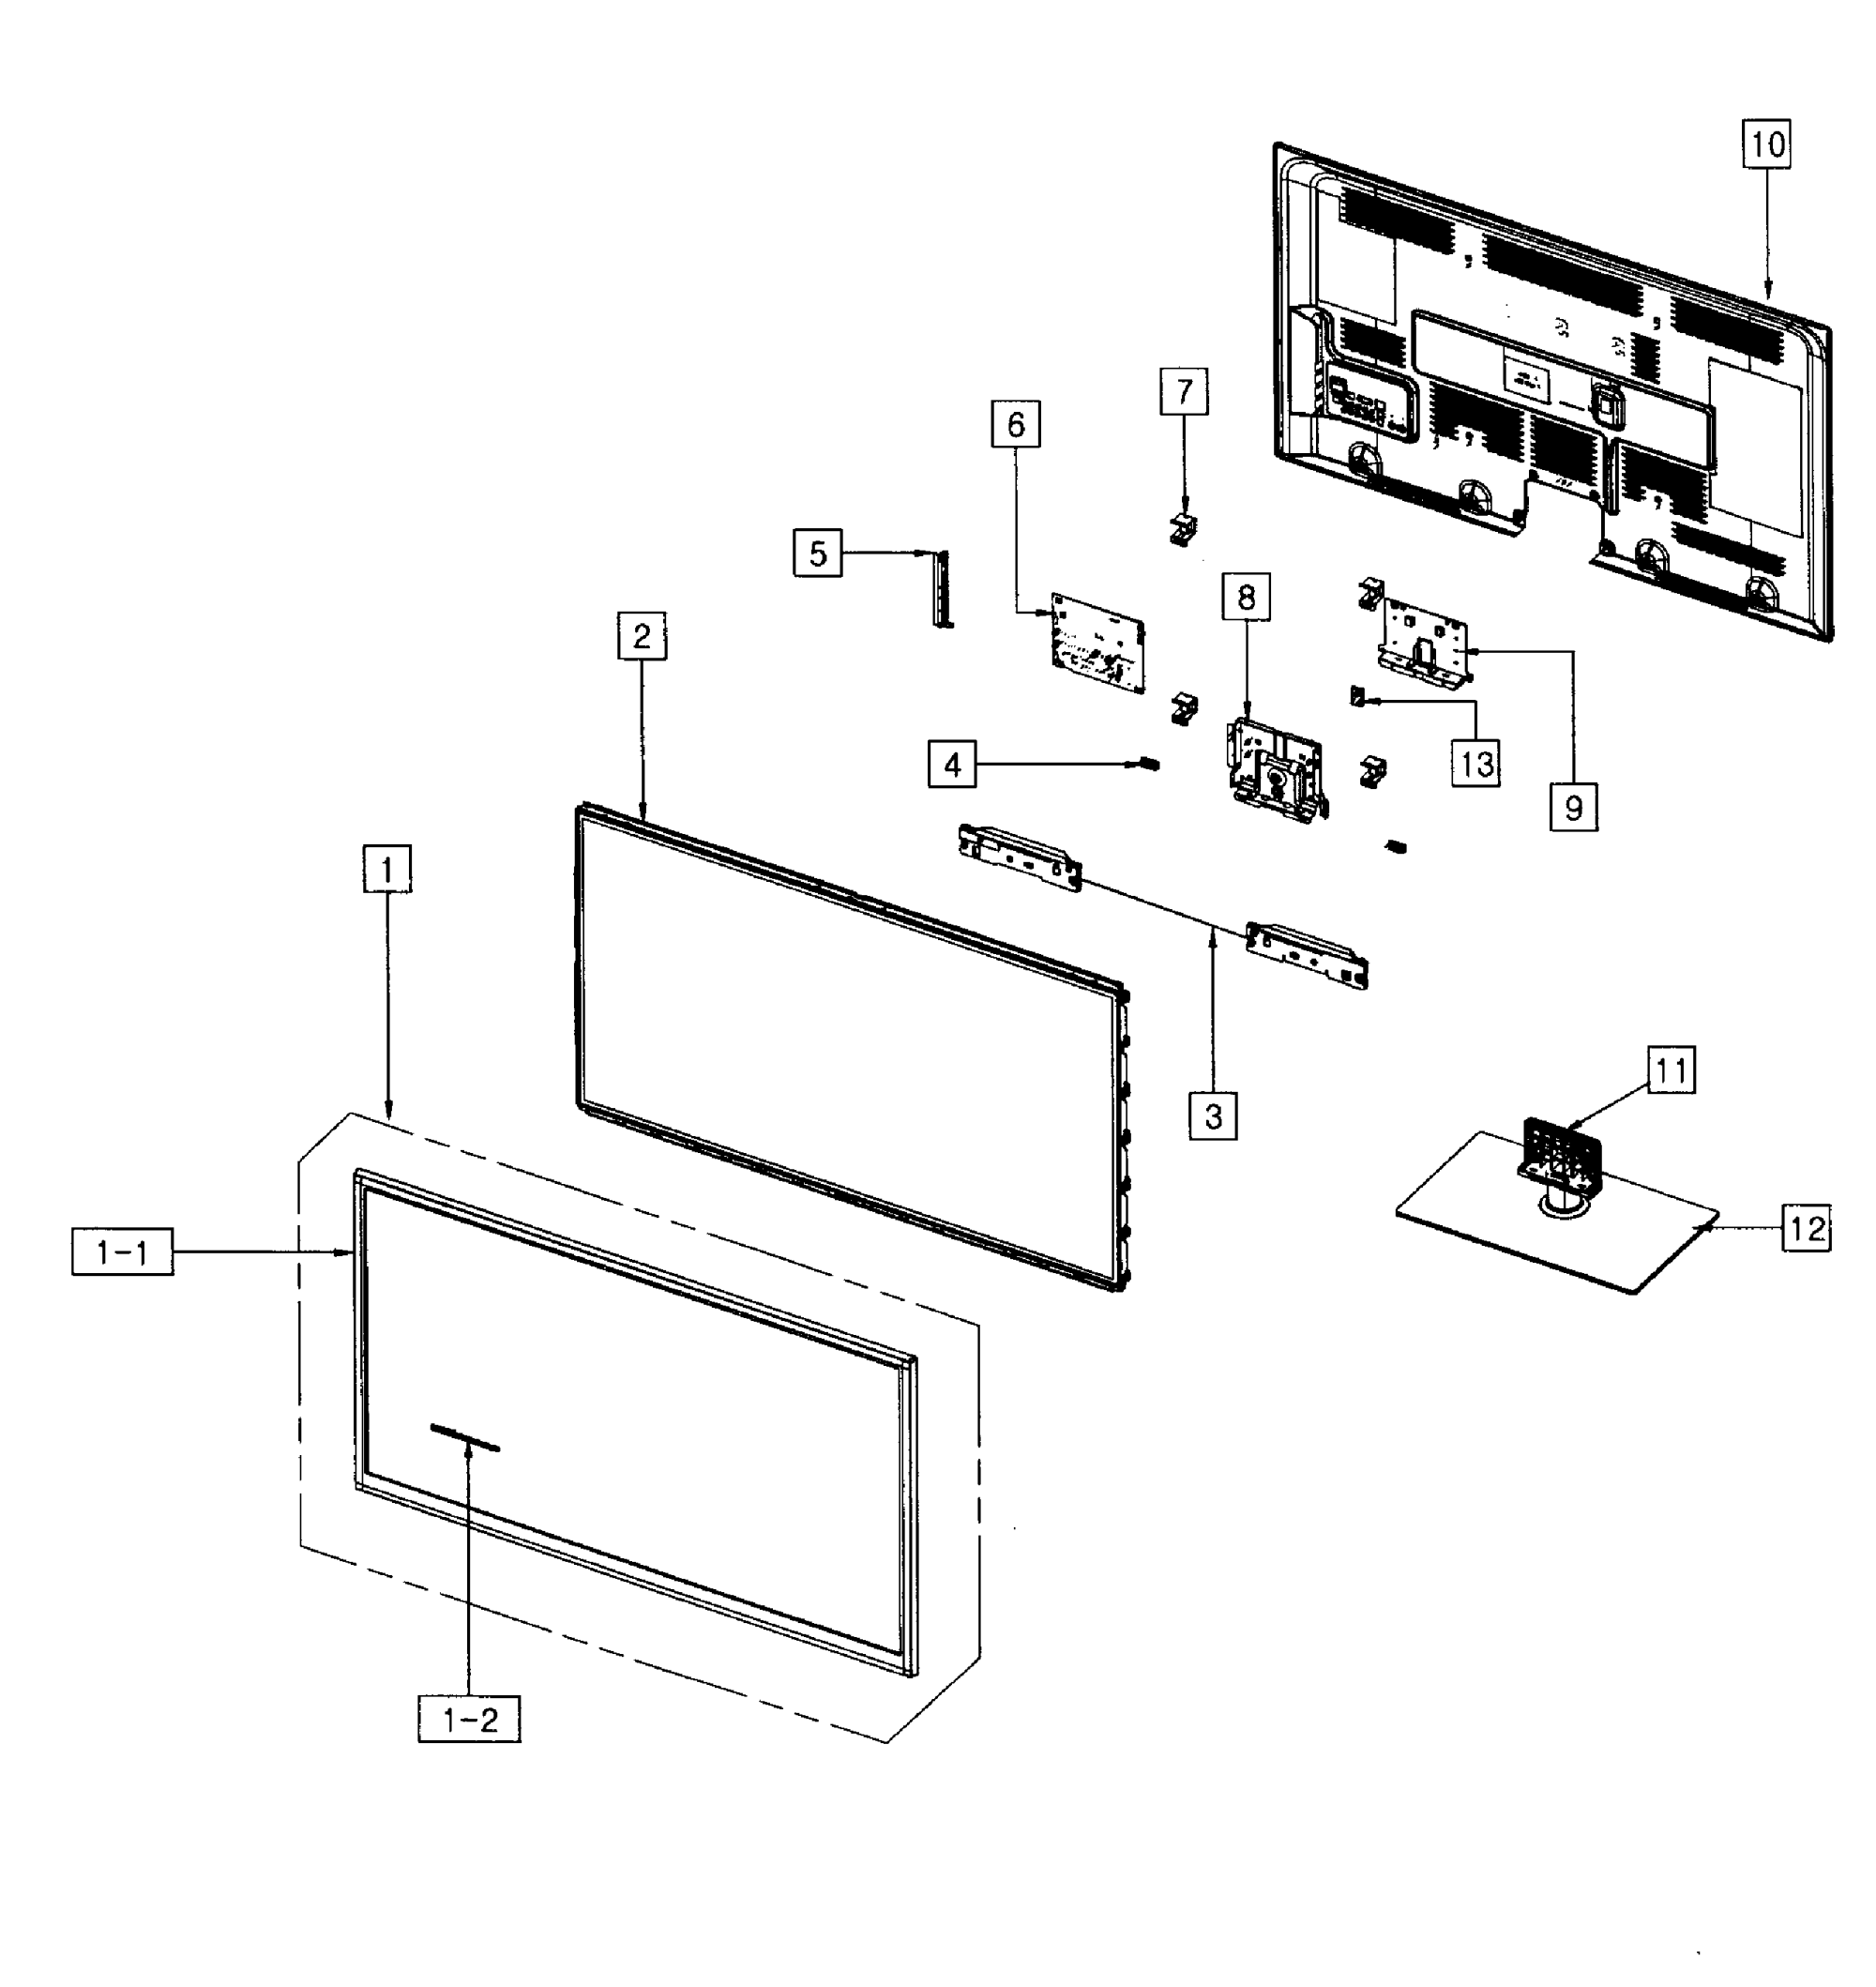 hight resolution of looking for samsung model pn43f4500afxza plasma television repairsamsung pn43f4500afxza cabinet parts diagram